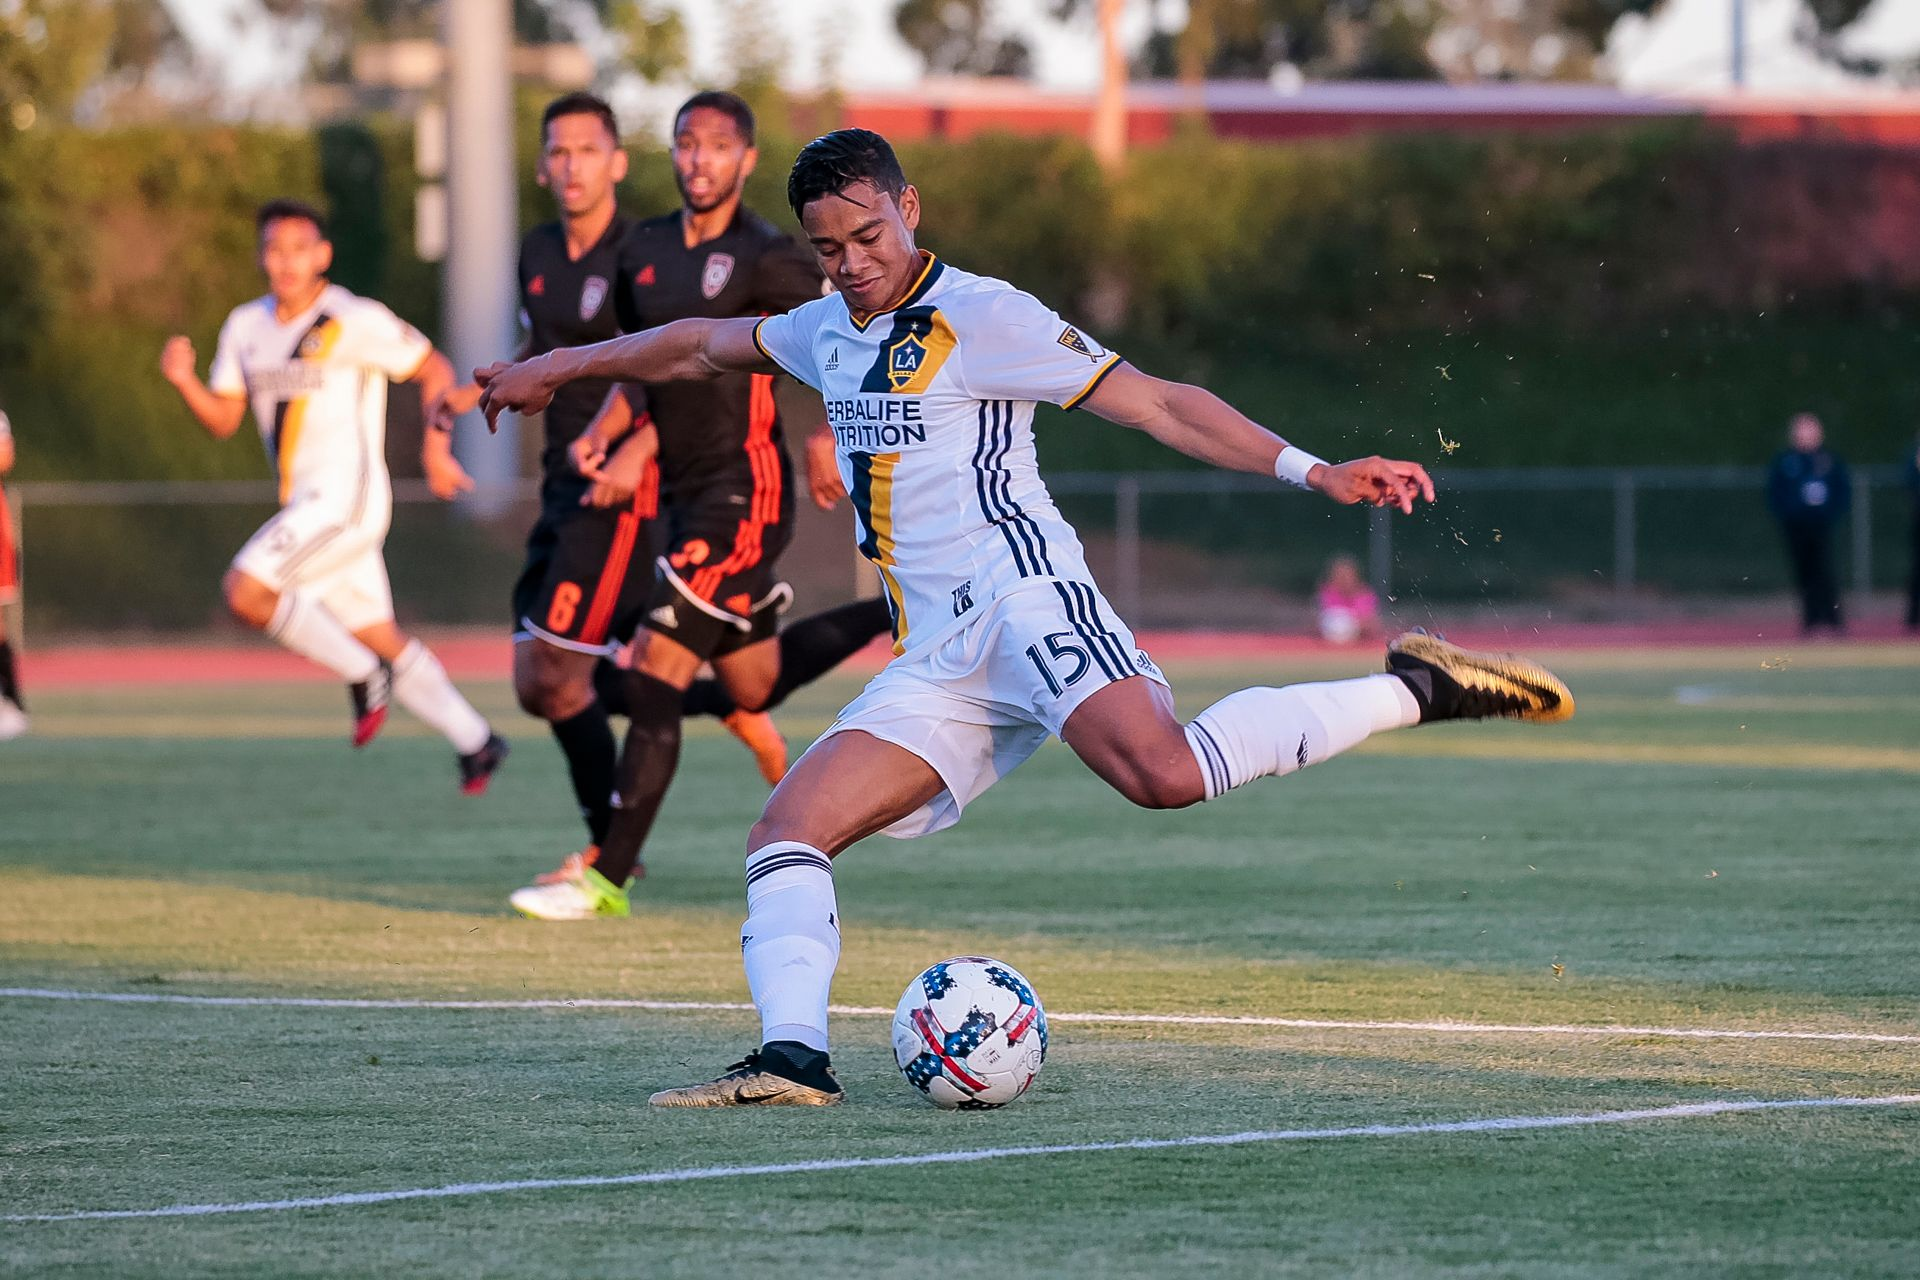 LA Galaxy Are Final Southern California Team In 2017 U.S. Open Cup